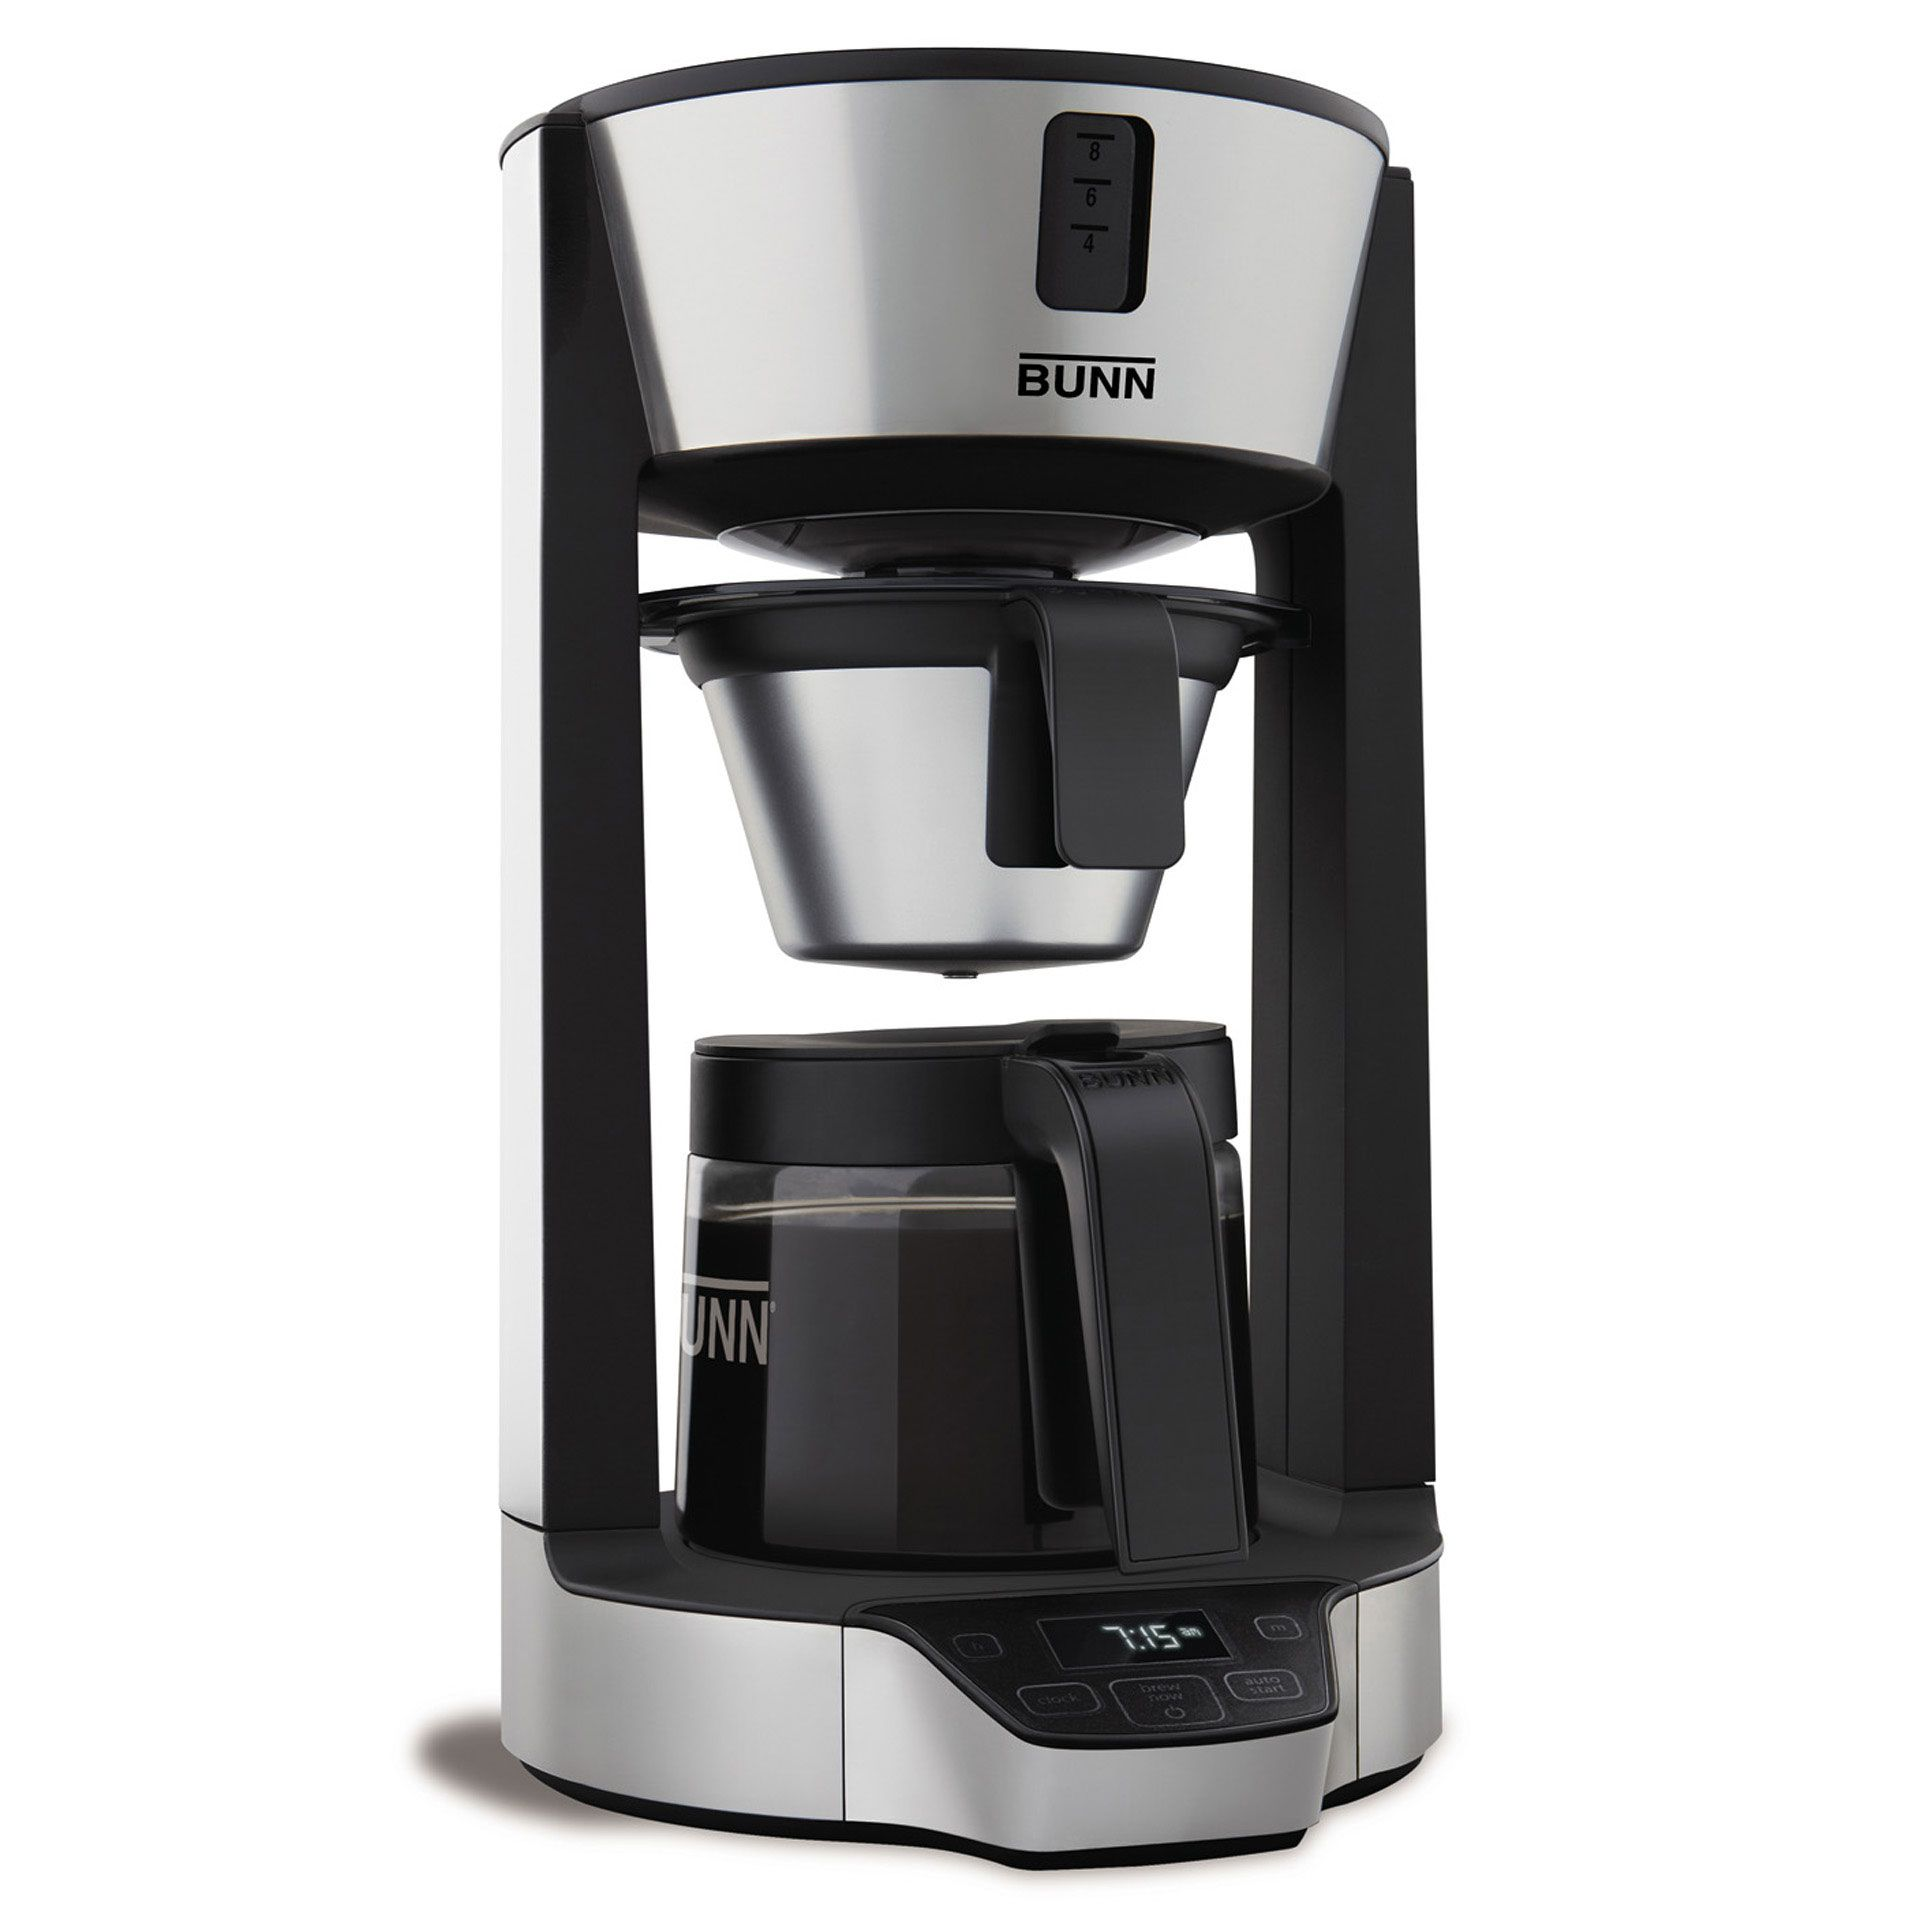 Bunn Hg Wiring Diagram Library Brew Phase 12 Cup Coffee Makerbunn 12950 0360 Maker Automatic Thermal Carafe